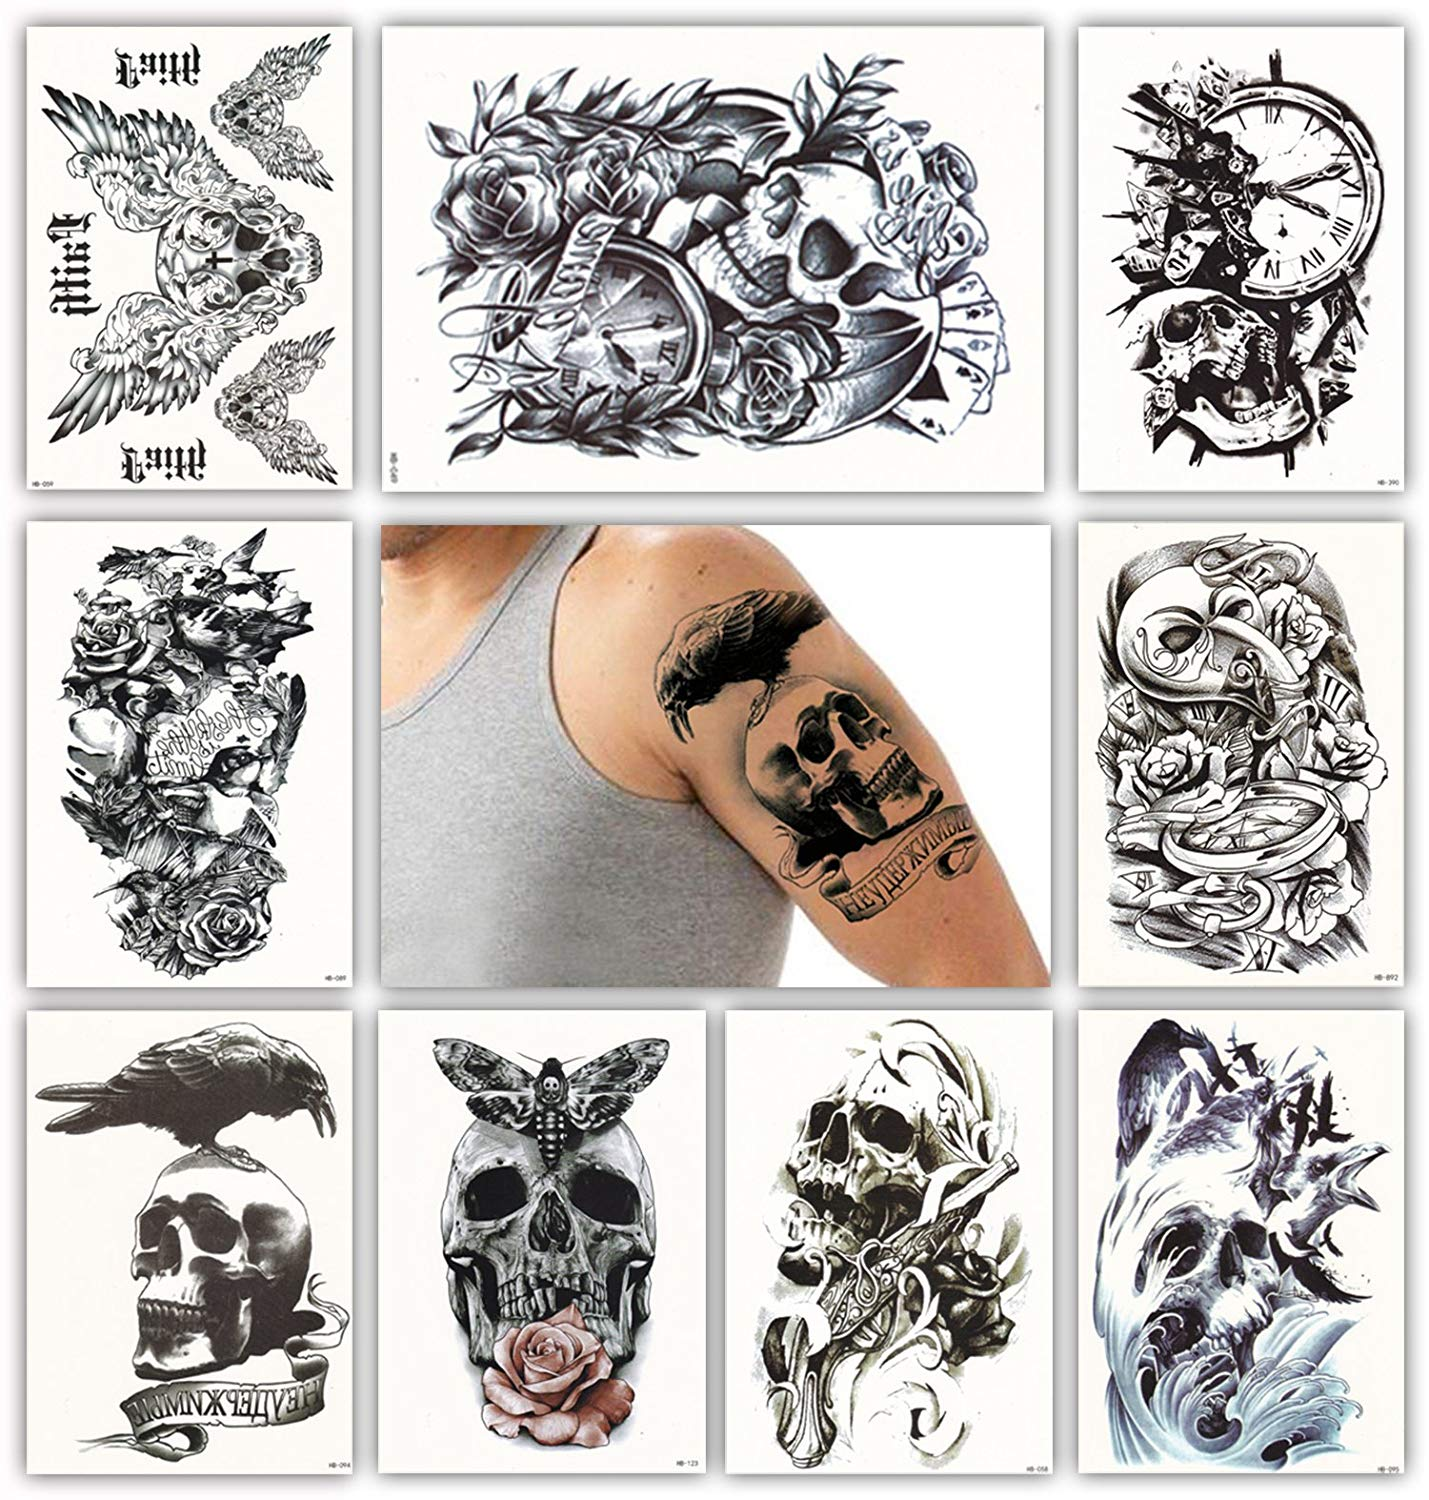 Waterproof Temporary Tattoo Sticker Skull Head Rose Clock Full Arm Fake Tatto Flash Tatoo Sleeve Large Size For Men Women Lady Factory Direct Selling Price Beauty & Health